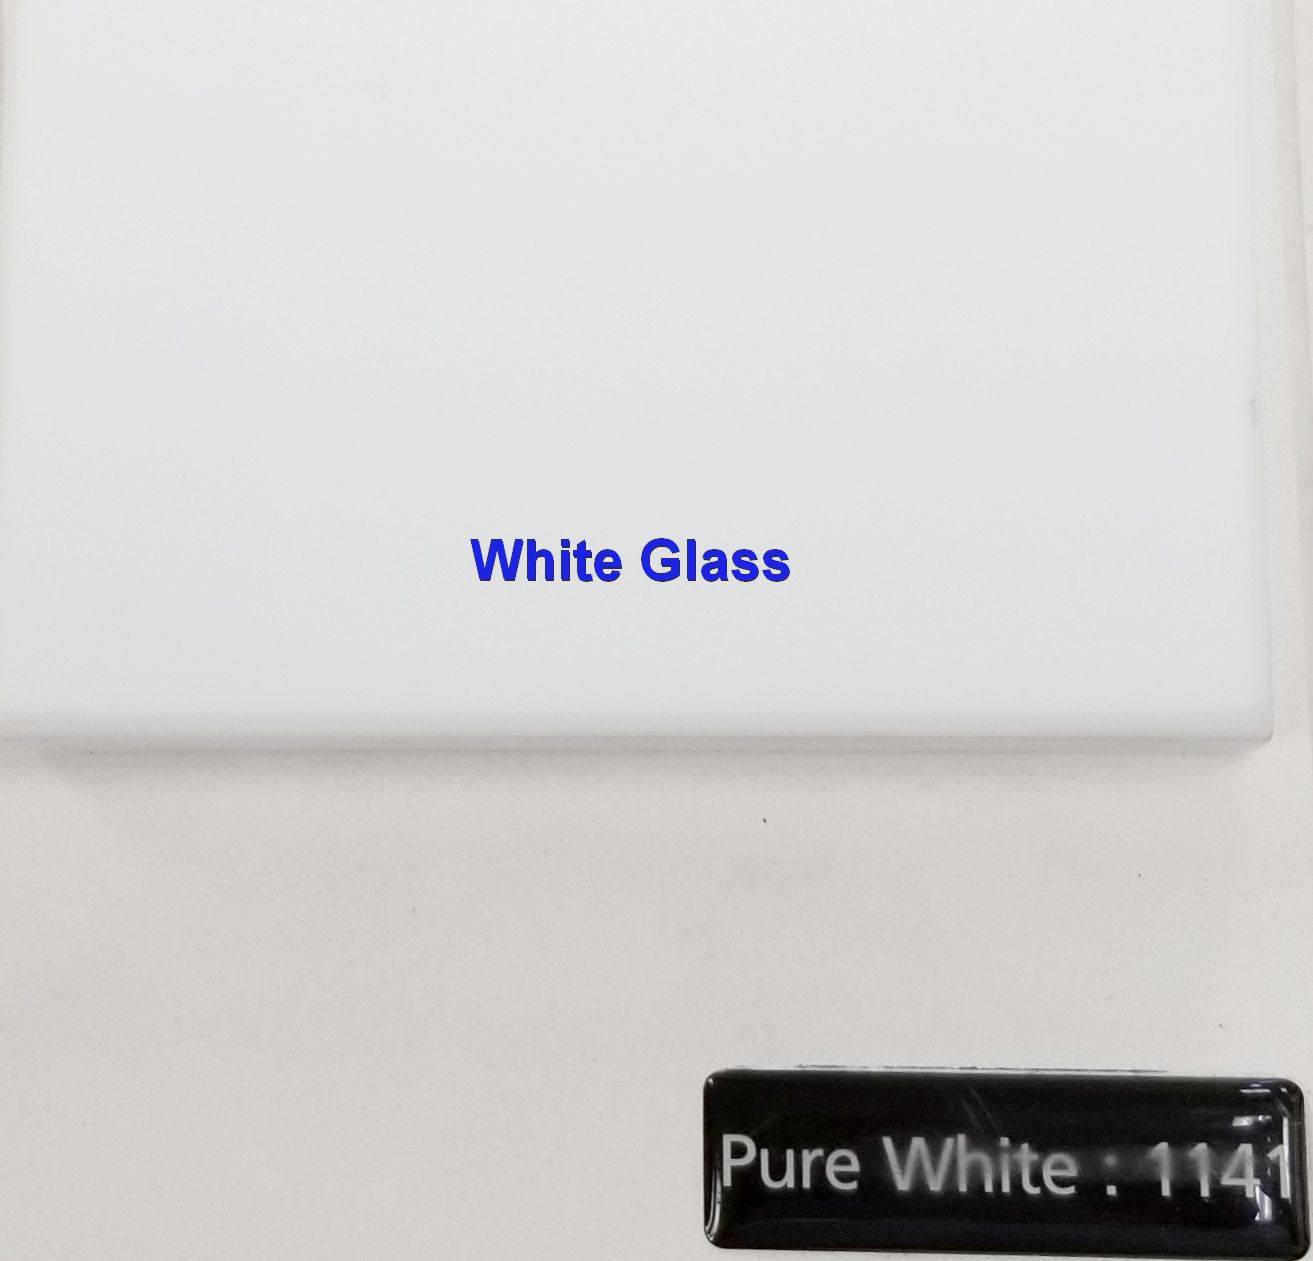 Countertop Comparisons Whitest Countertop Options Which Is Whiter Glass Or Quartz